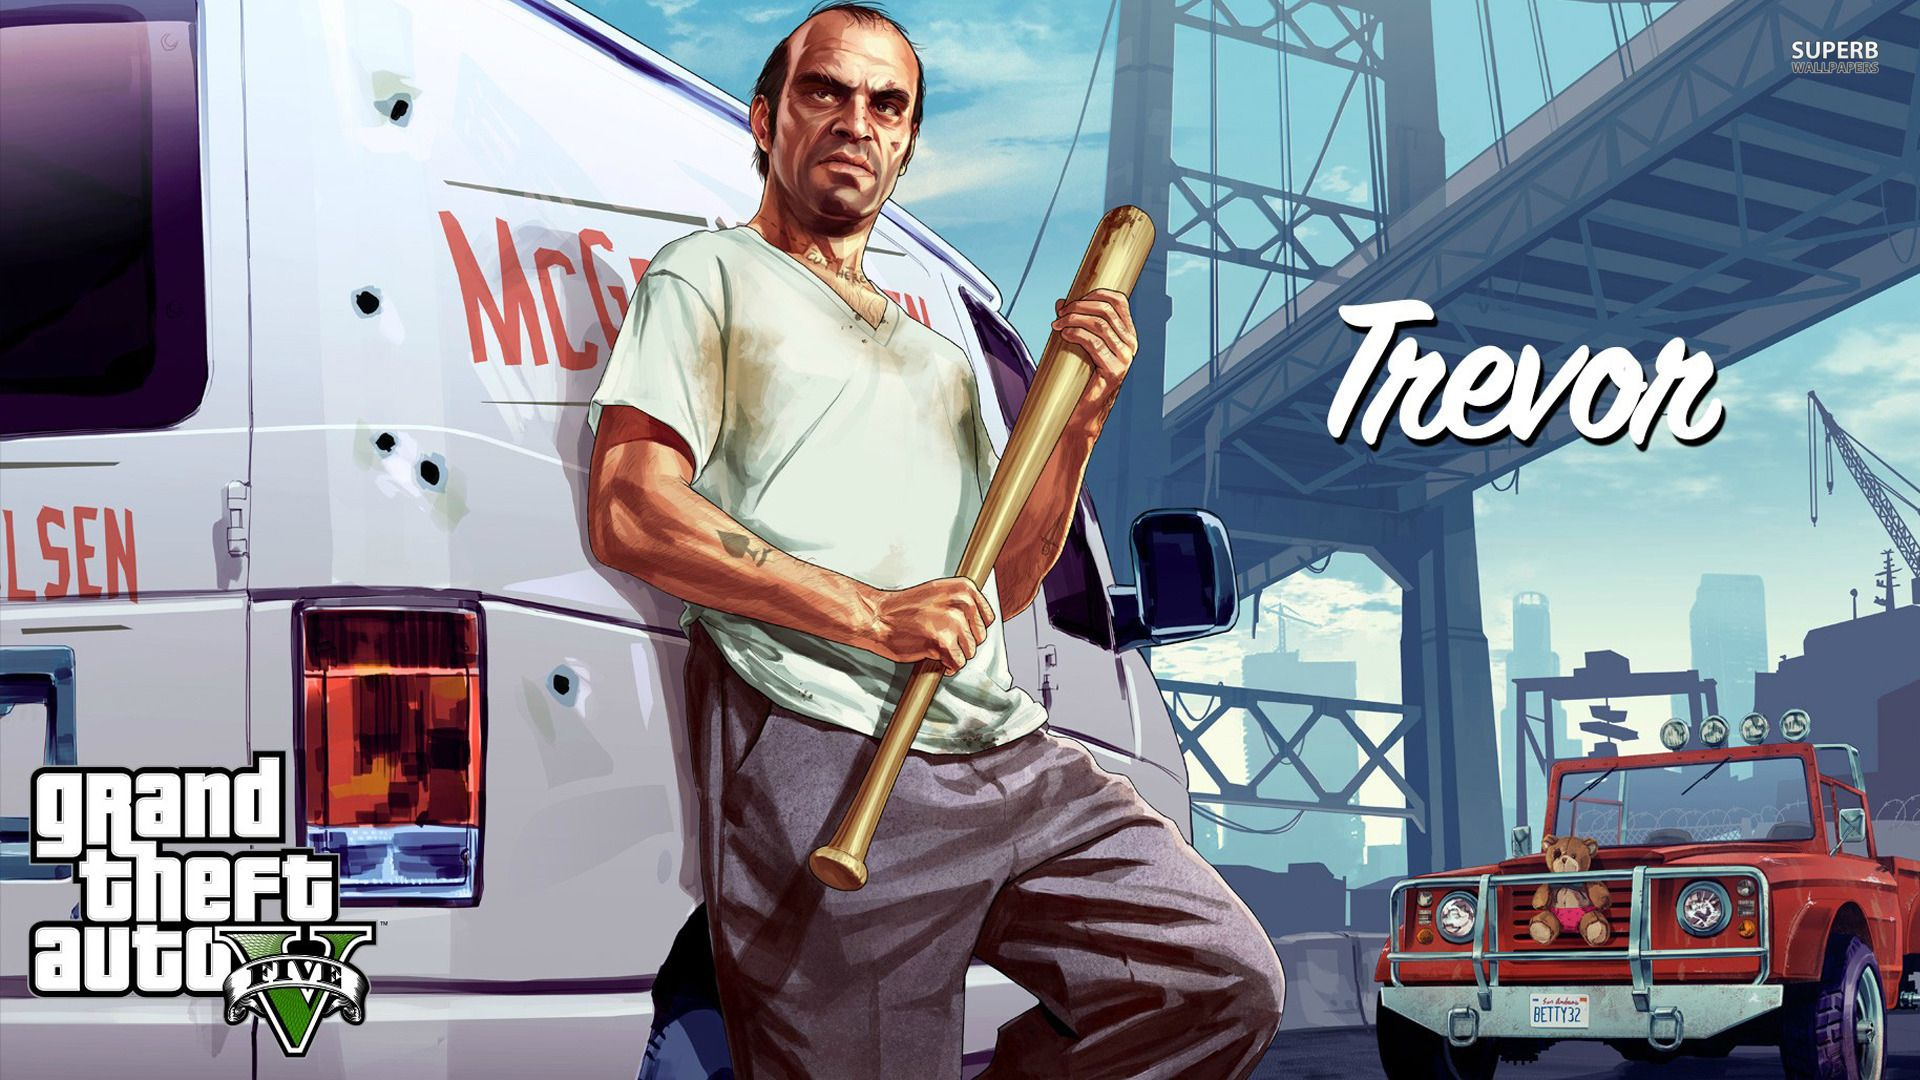 wallpaper gta collection for free download | hd wallpapers